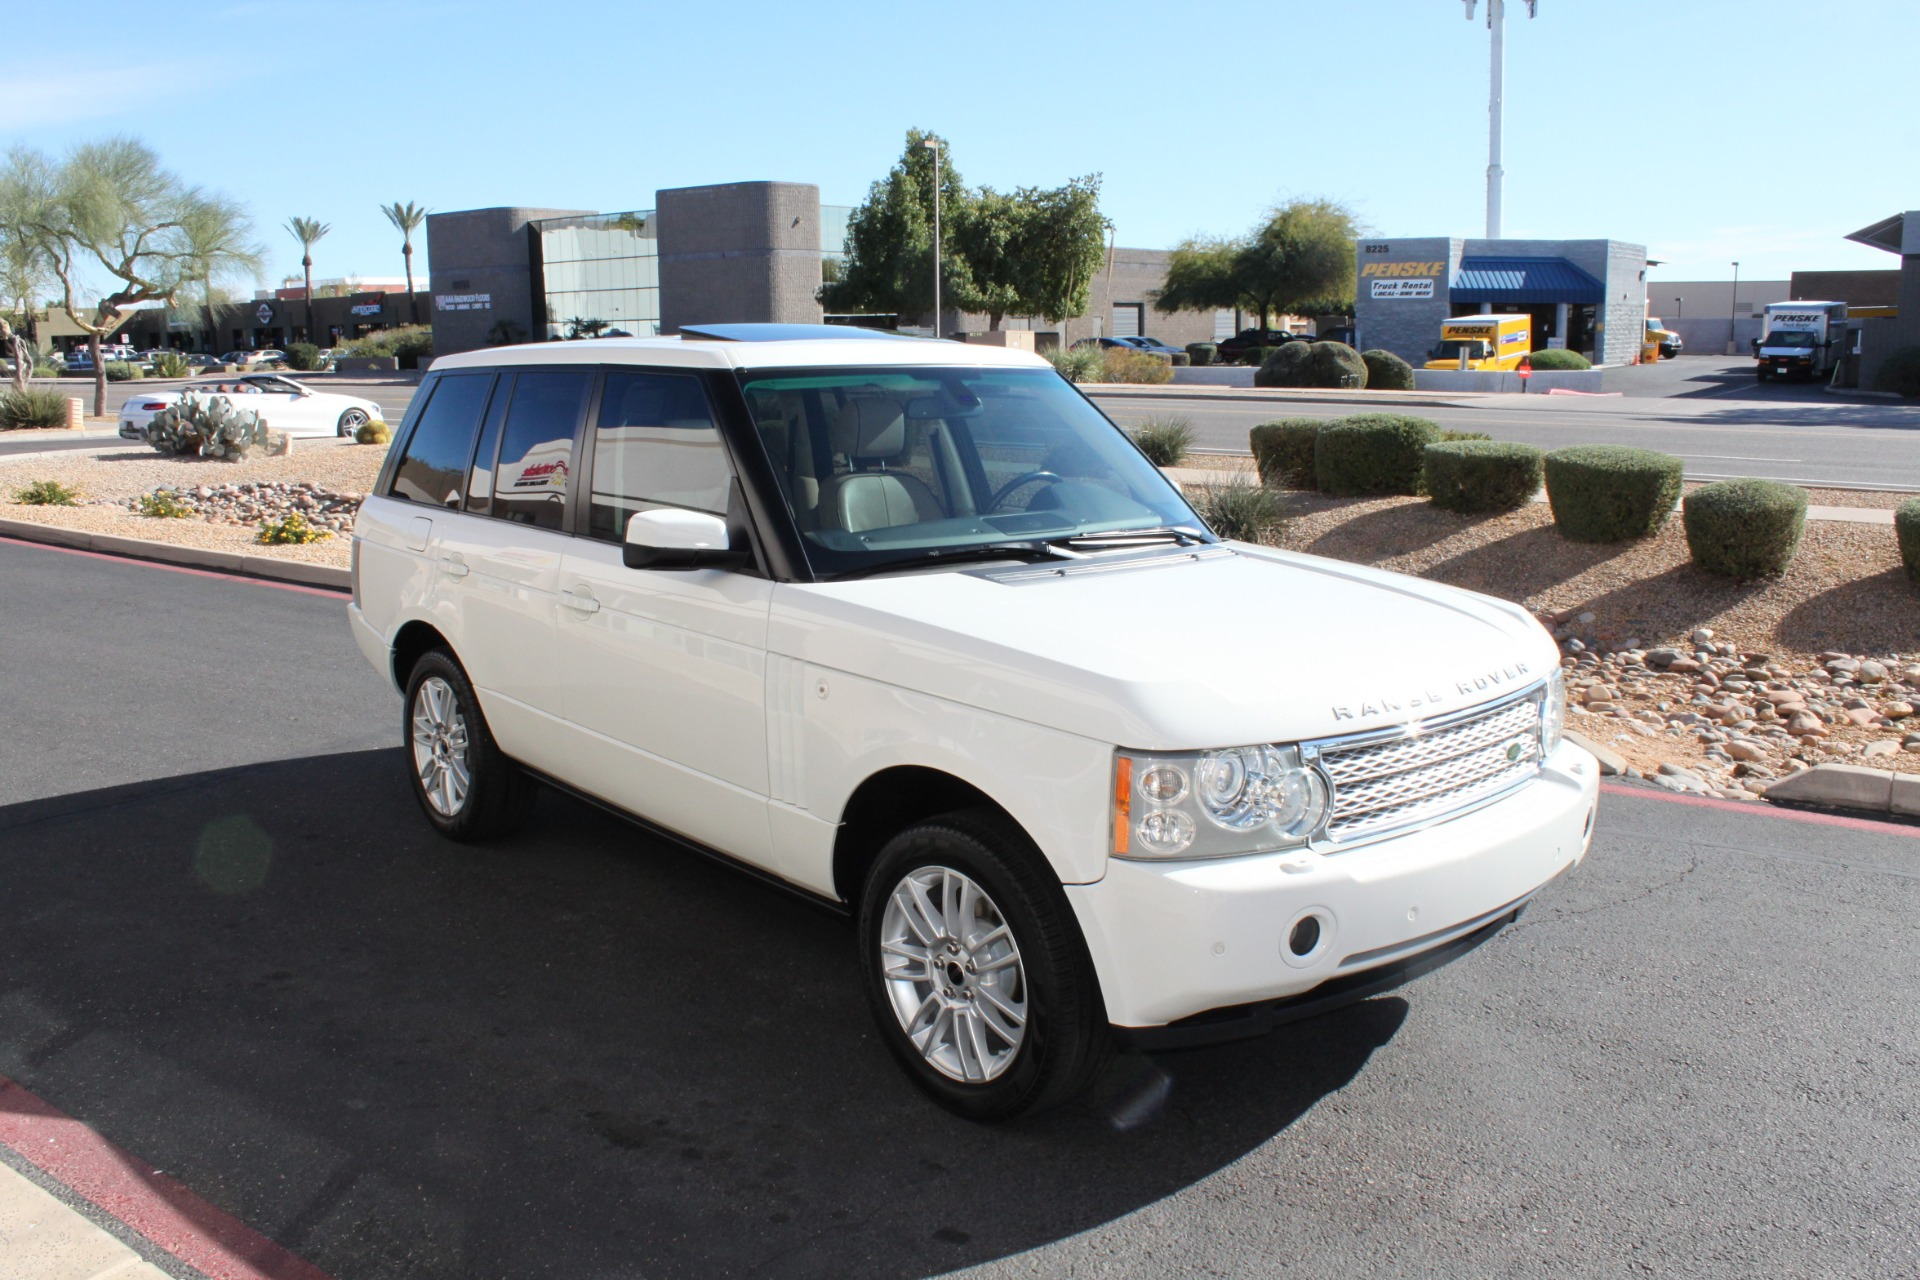 Used-2007-Land-Rover-Range-Rover-HSE-Chevelle